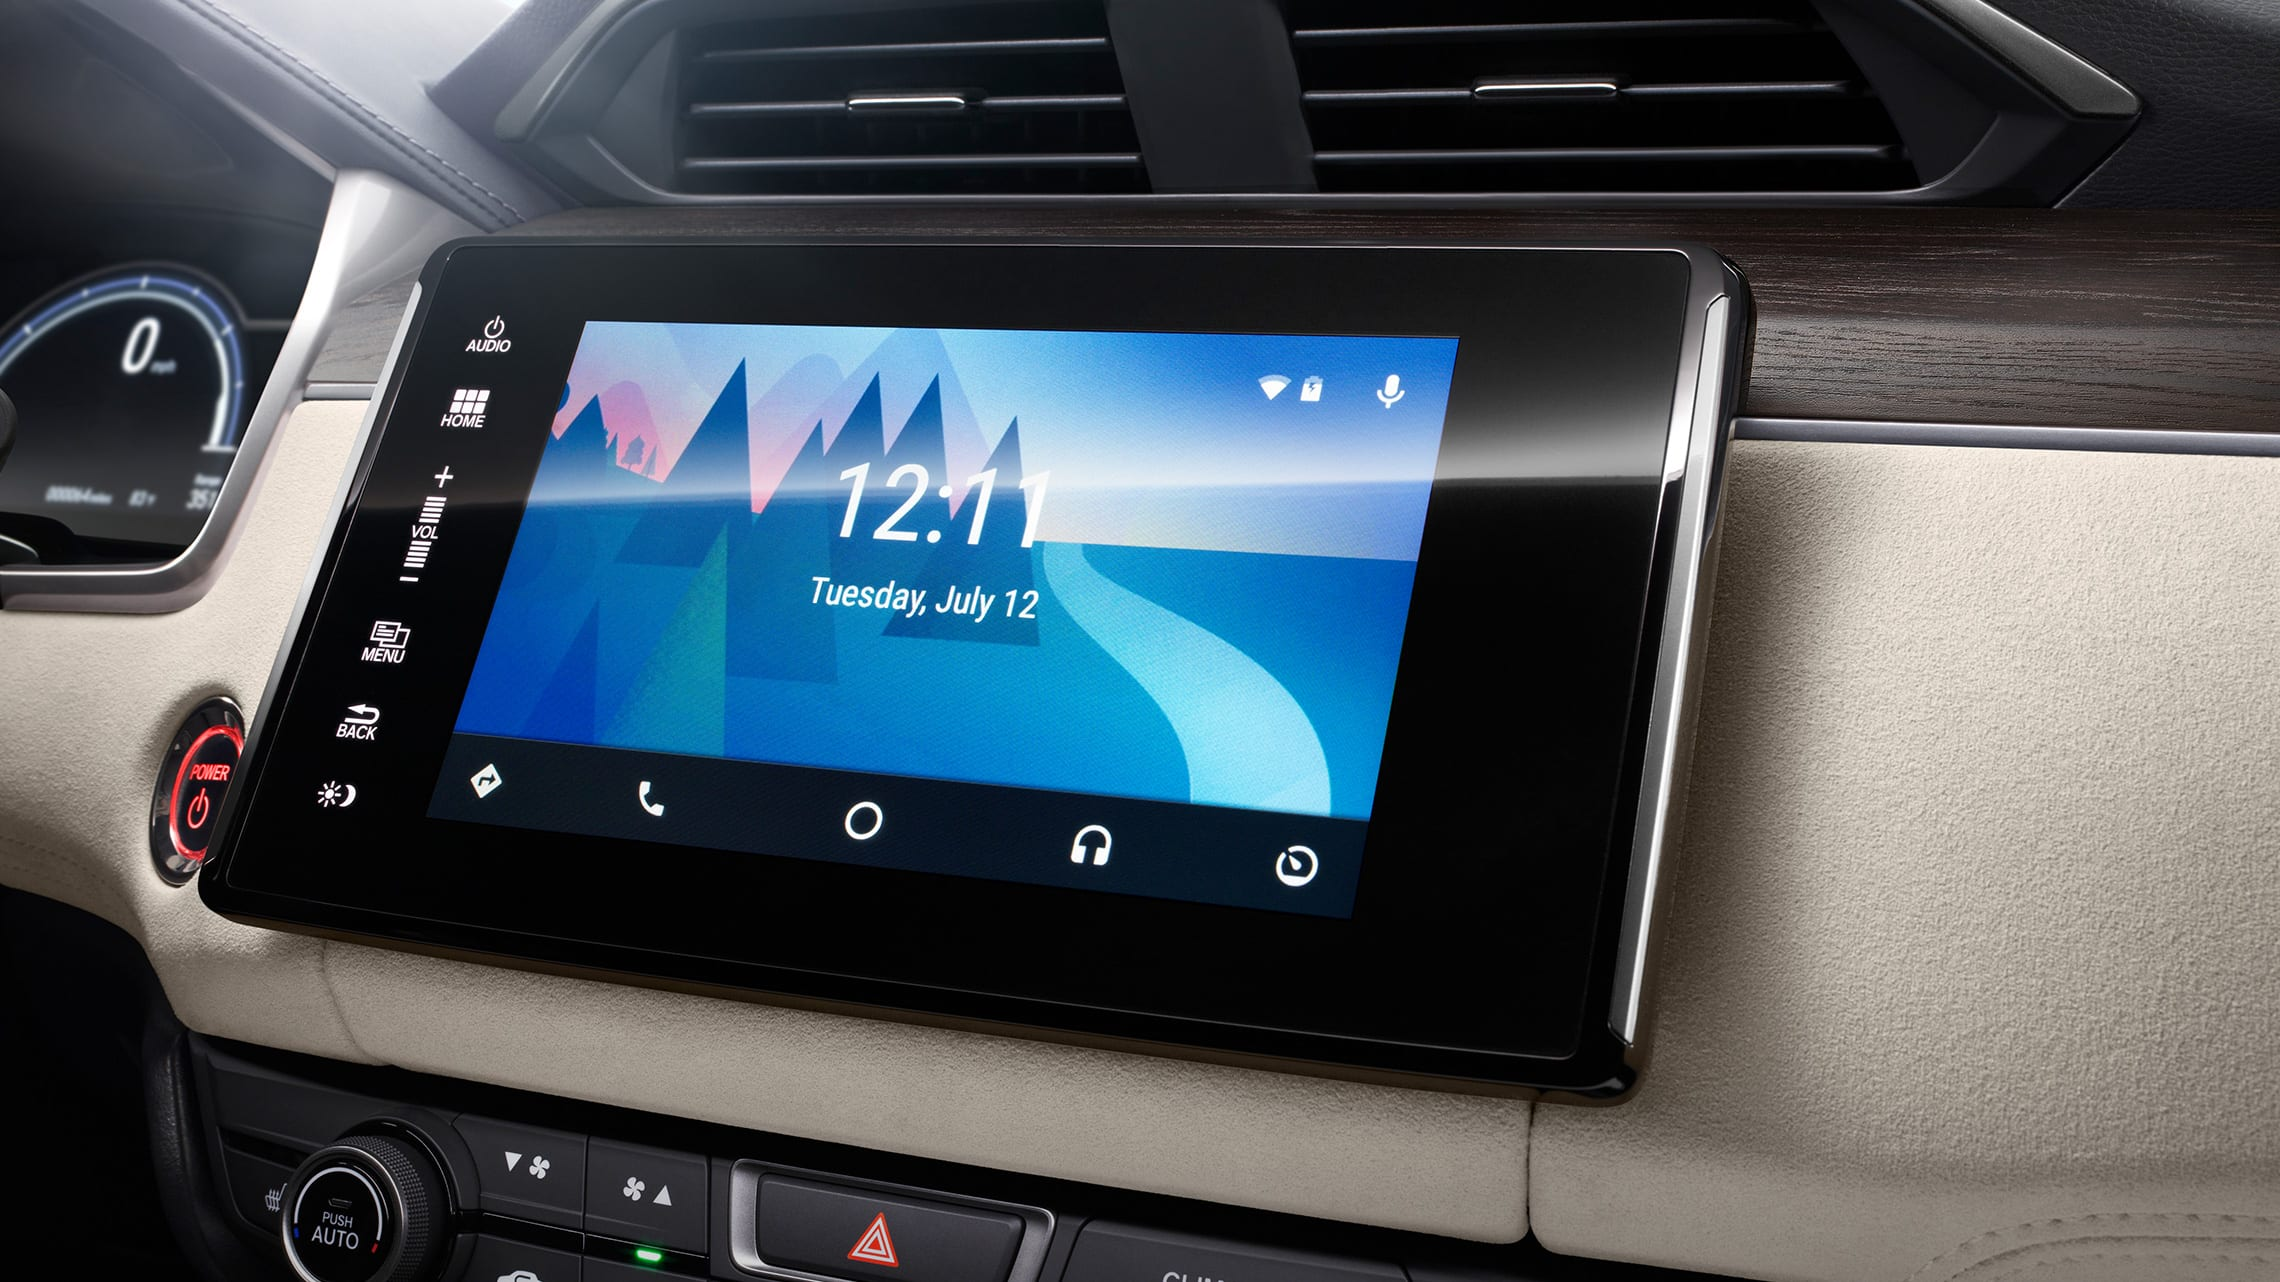 Integración con Android Auto™ en el sistema de audio en pantalla táctil de la Honda Ridgeline 2021.